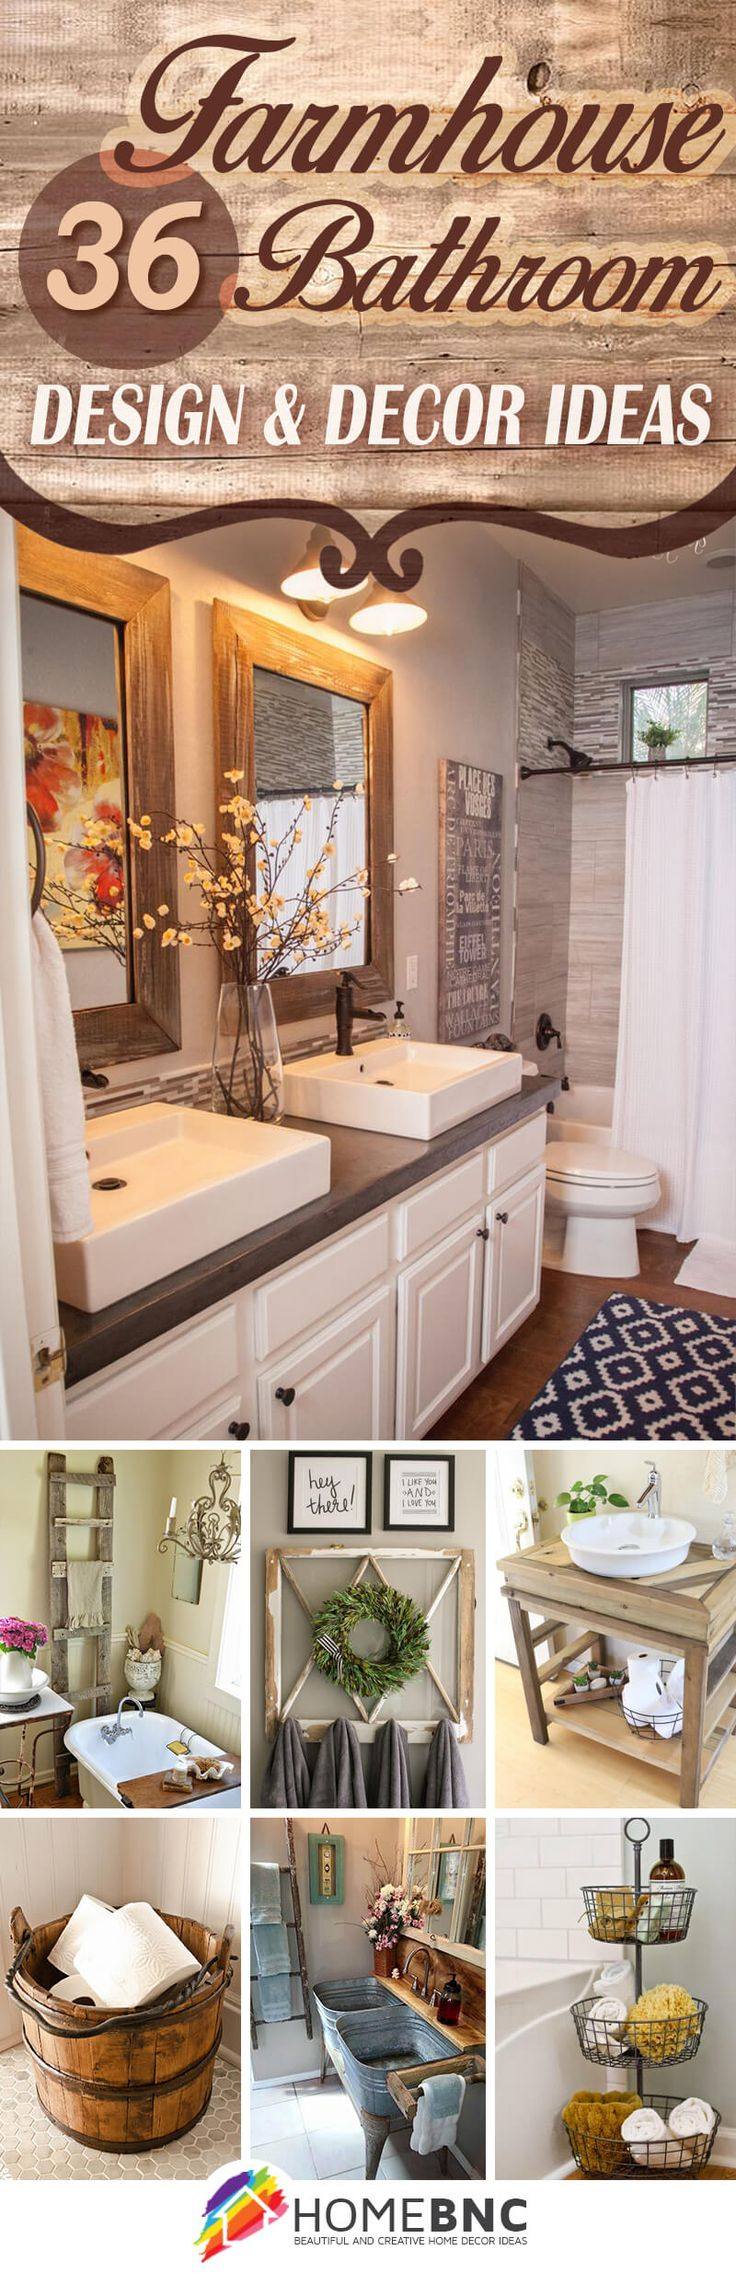 Beautiful bathroom decorating ideas - 36 Beautiful Farmhouse Bathroom Design And Decor Ideas You Will Go Crazy For